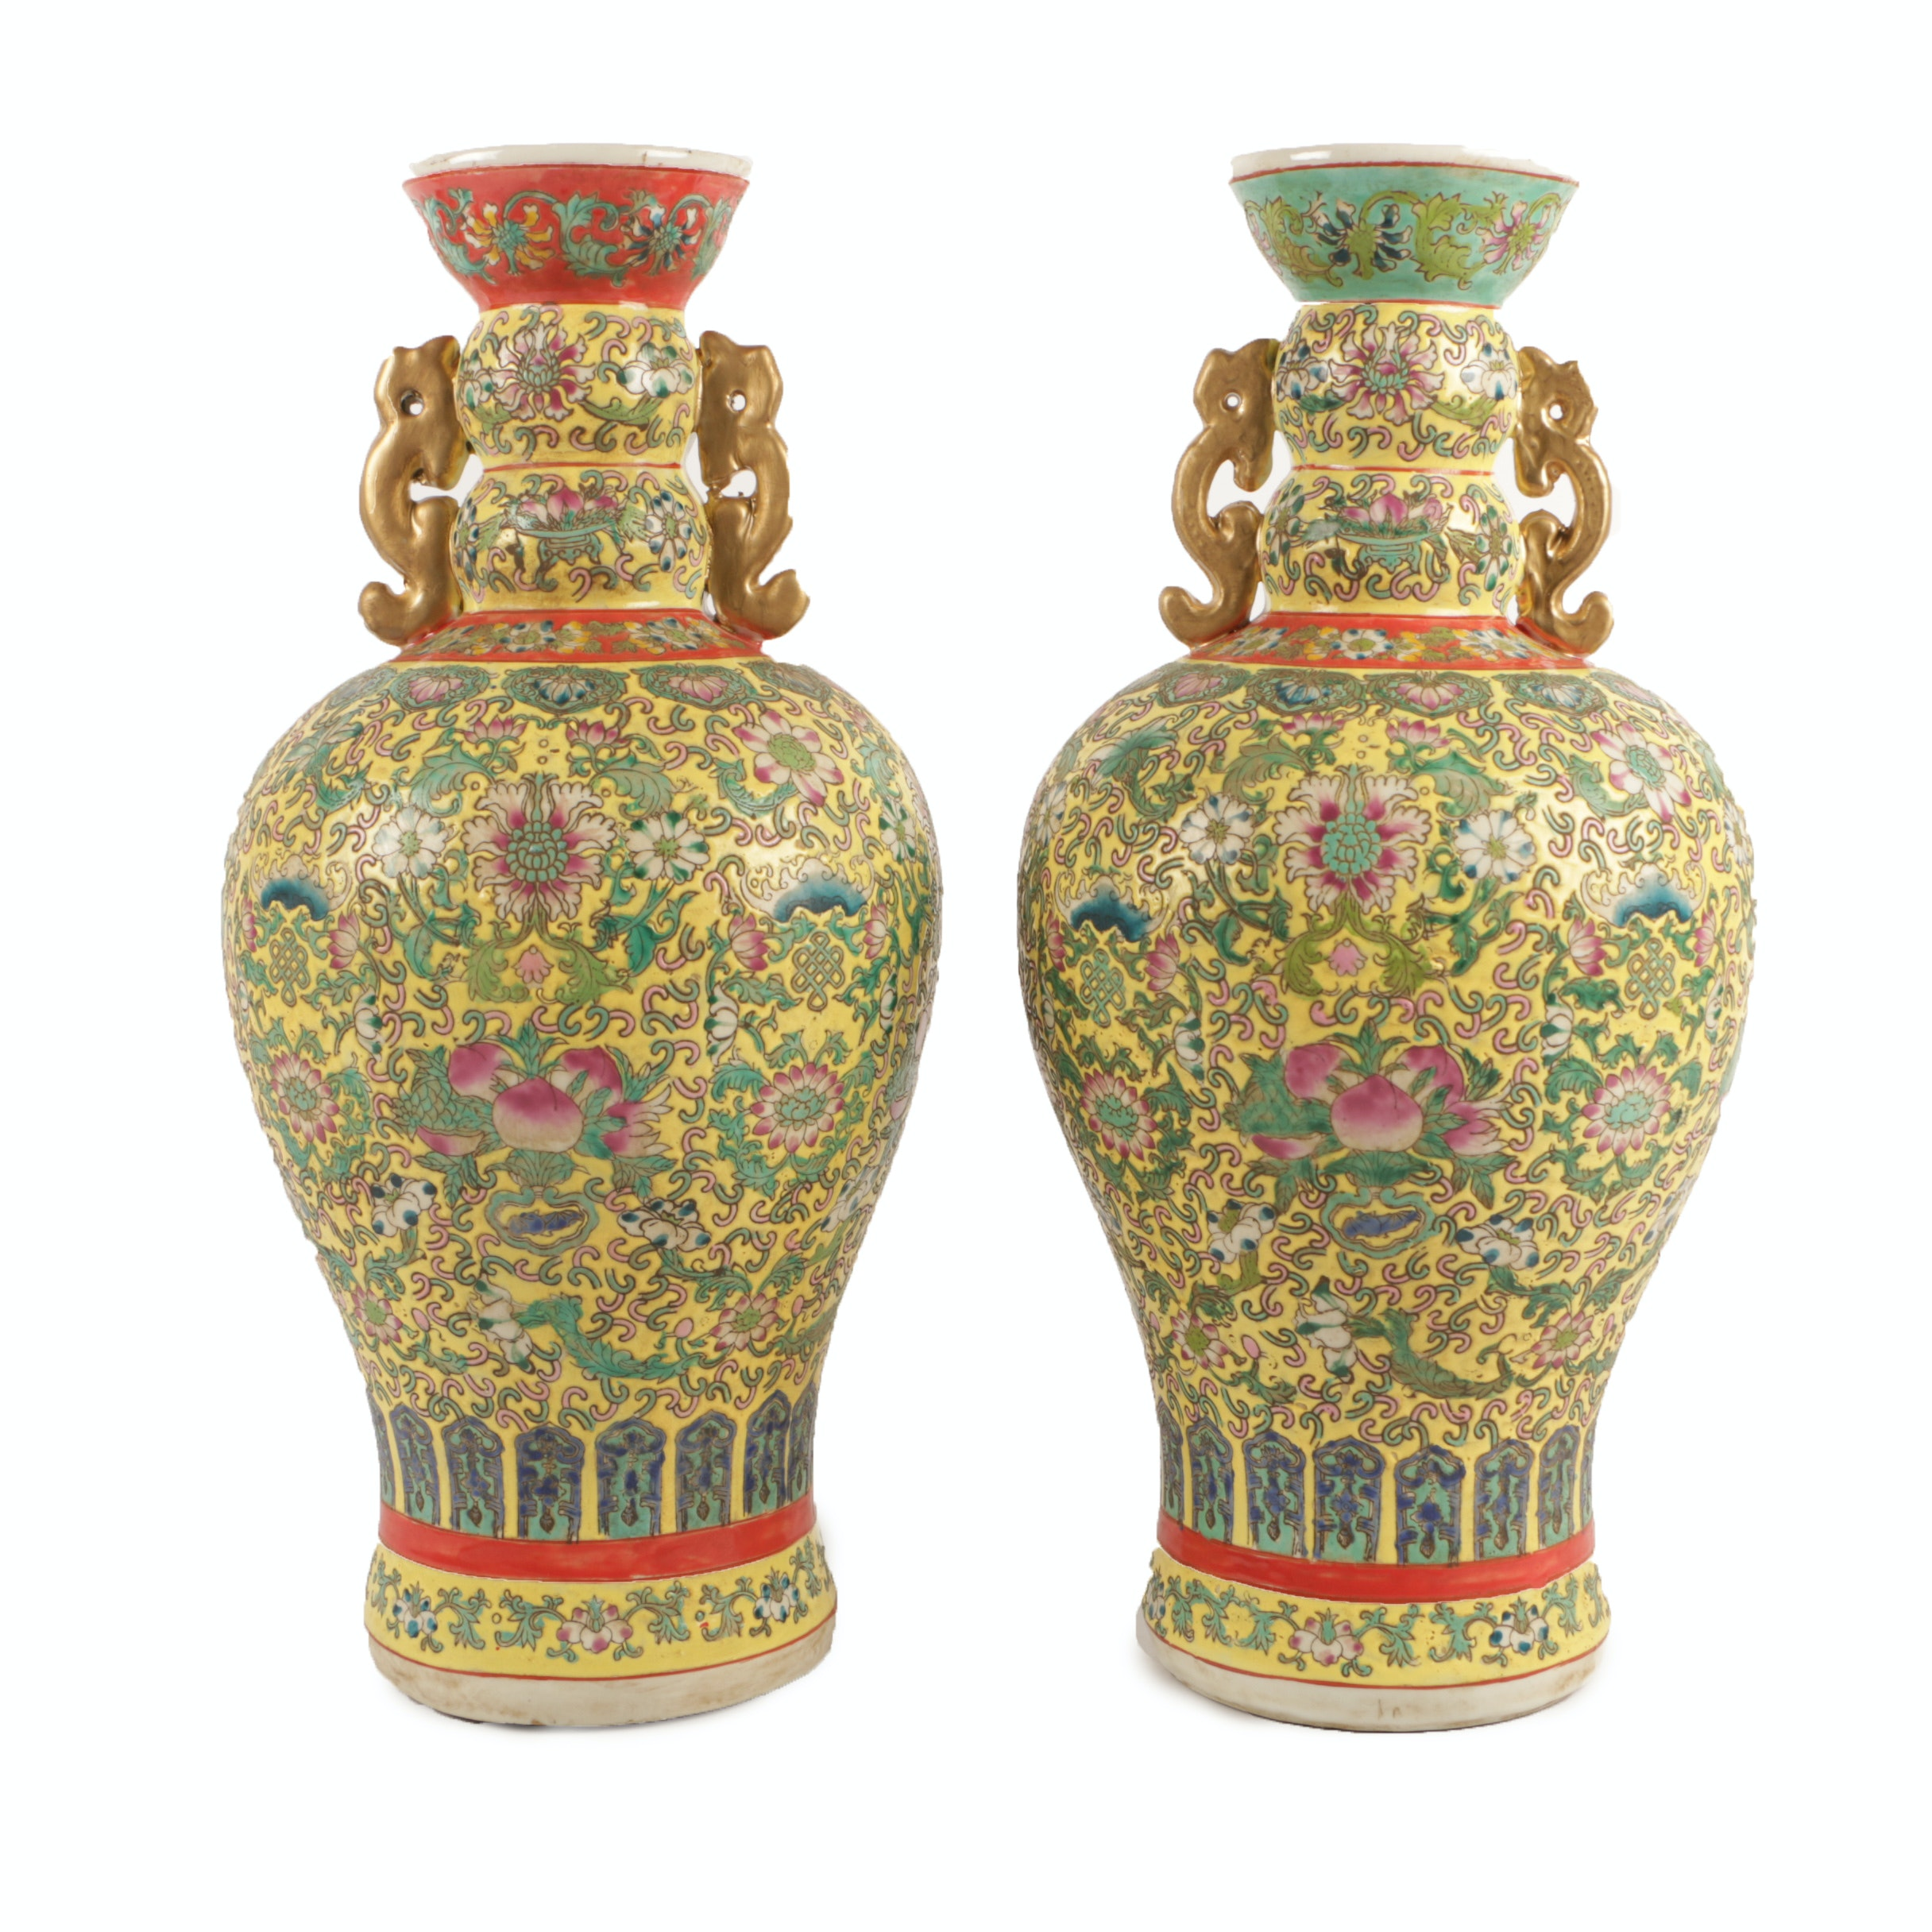 Chinese Famille Jaune Style Floral Themed Ceramic Vases with Gilt Handles